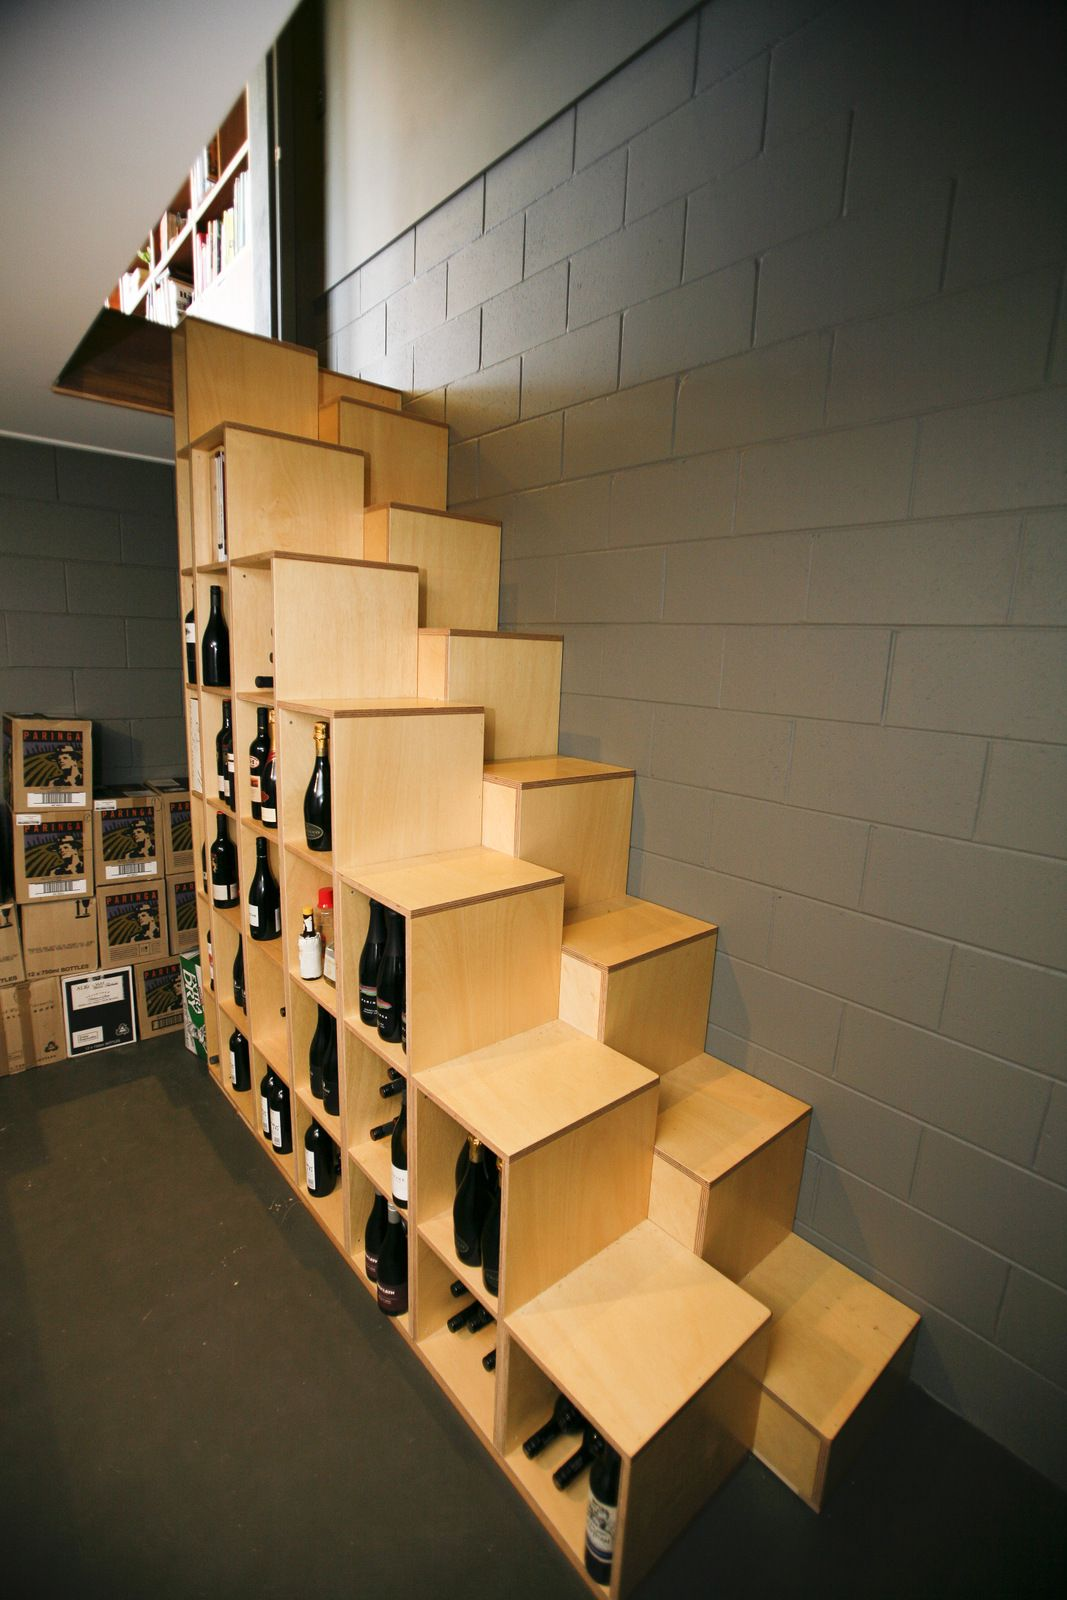 Simple Plywood Alternating Tread Stair Which Provides Storage And   Alternating Tread Stair Design   Staggered   Style   Wood   Multipurpose   Double Thickness Tread